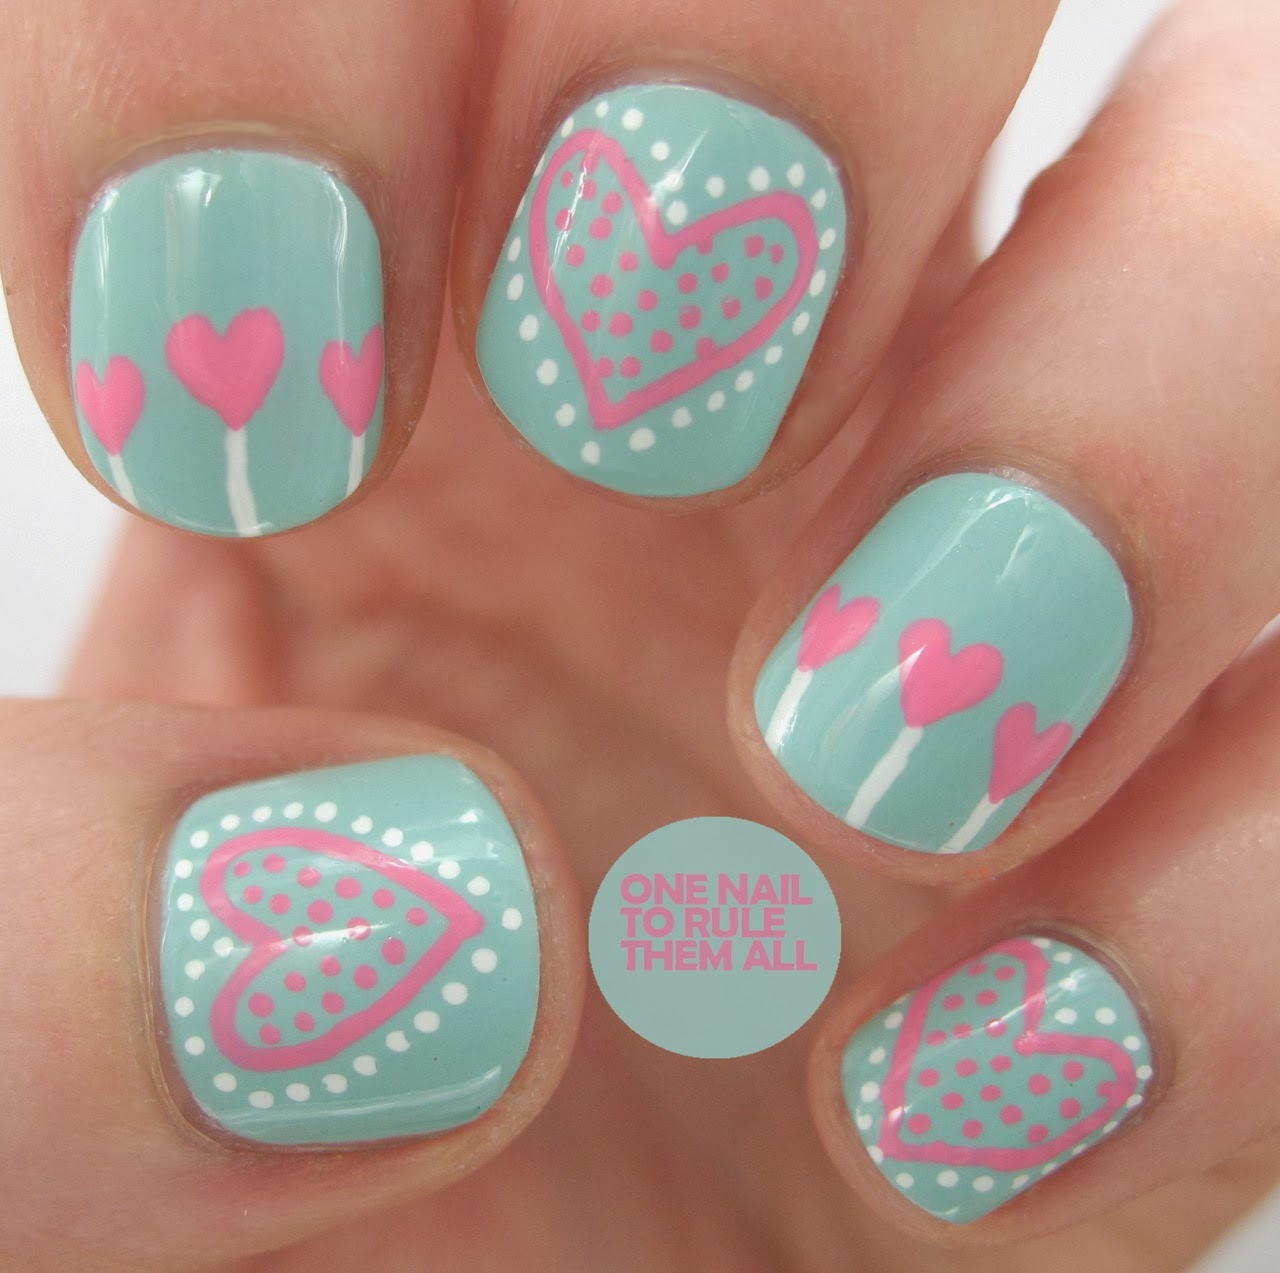 Girly Nail Art Designs: Cute Nail Art Ideas